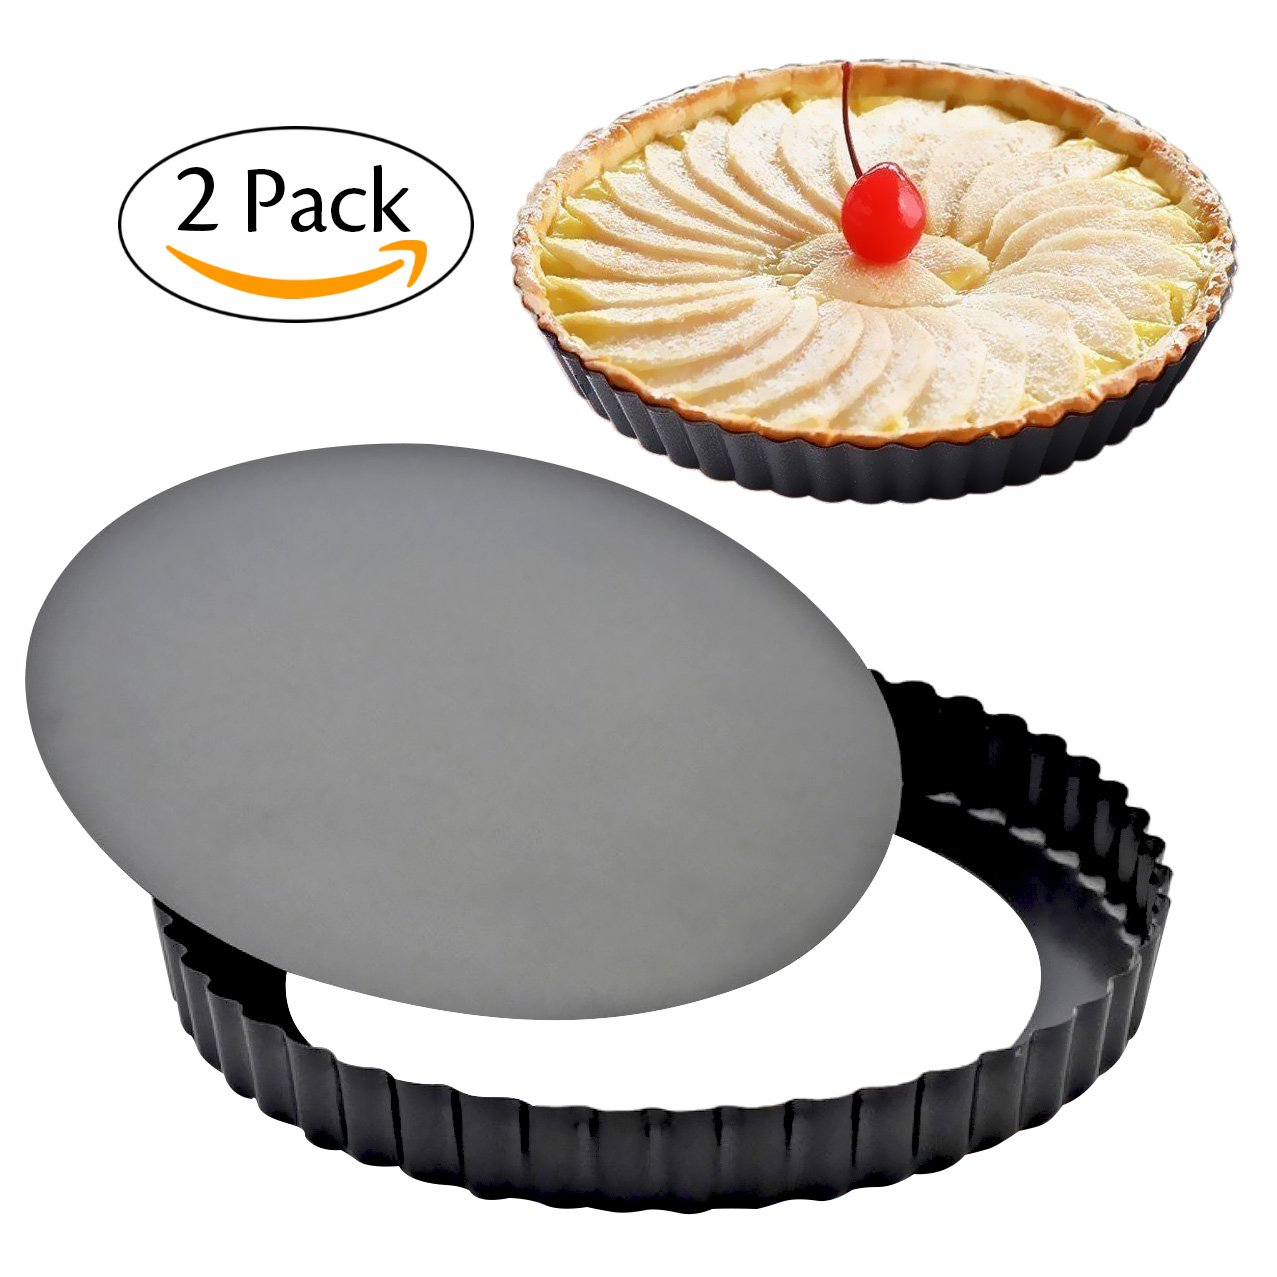 8 Inch Non-Stick Removable Loose Bottom Quiche Tart Pan (2 Pack), Tart Pie Pan with Removable Base